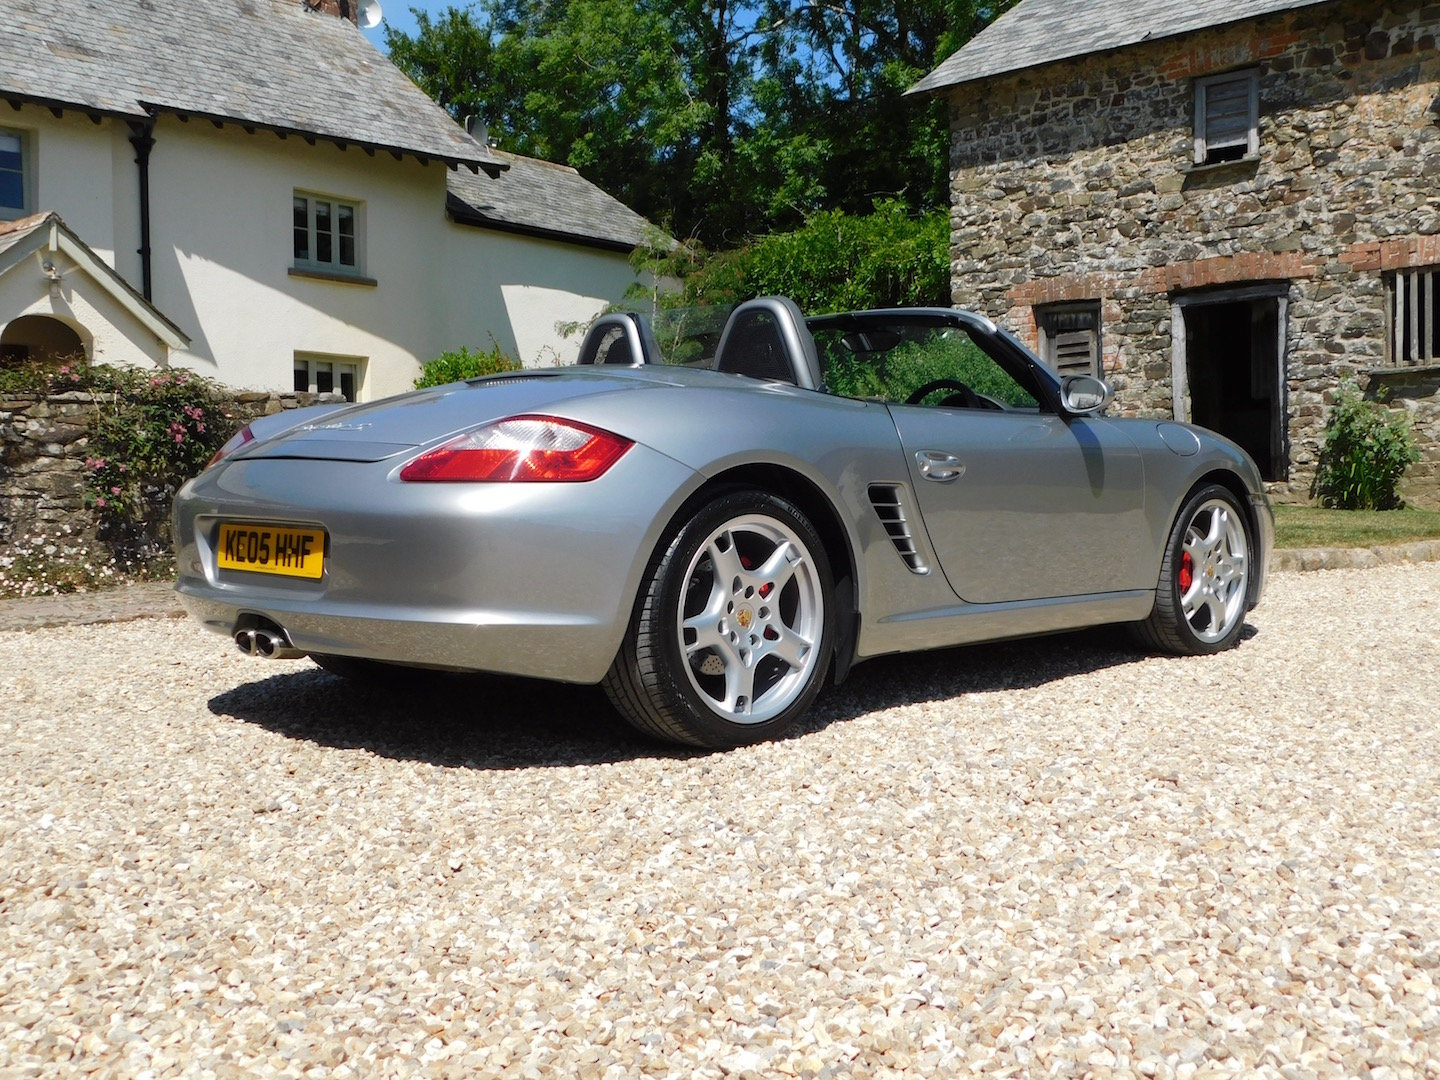 2005 Porsche 987 Boxster 3.2 S - superb order, FSH, high spec For Sale (picture 2 of 6)